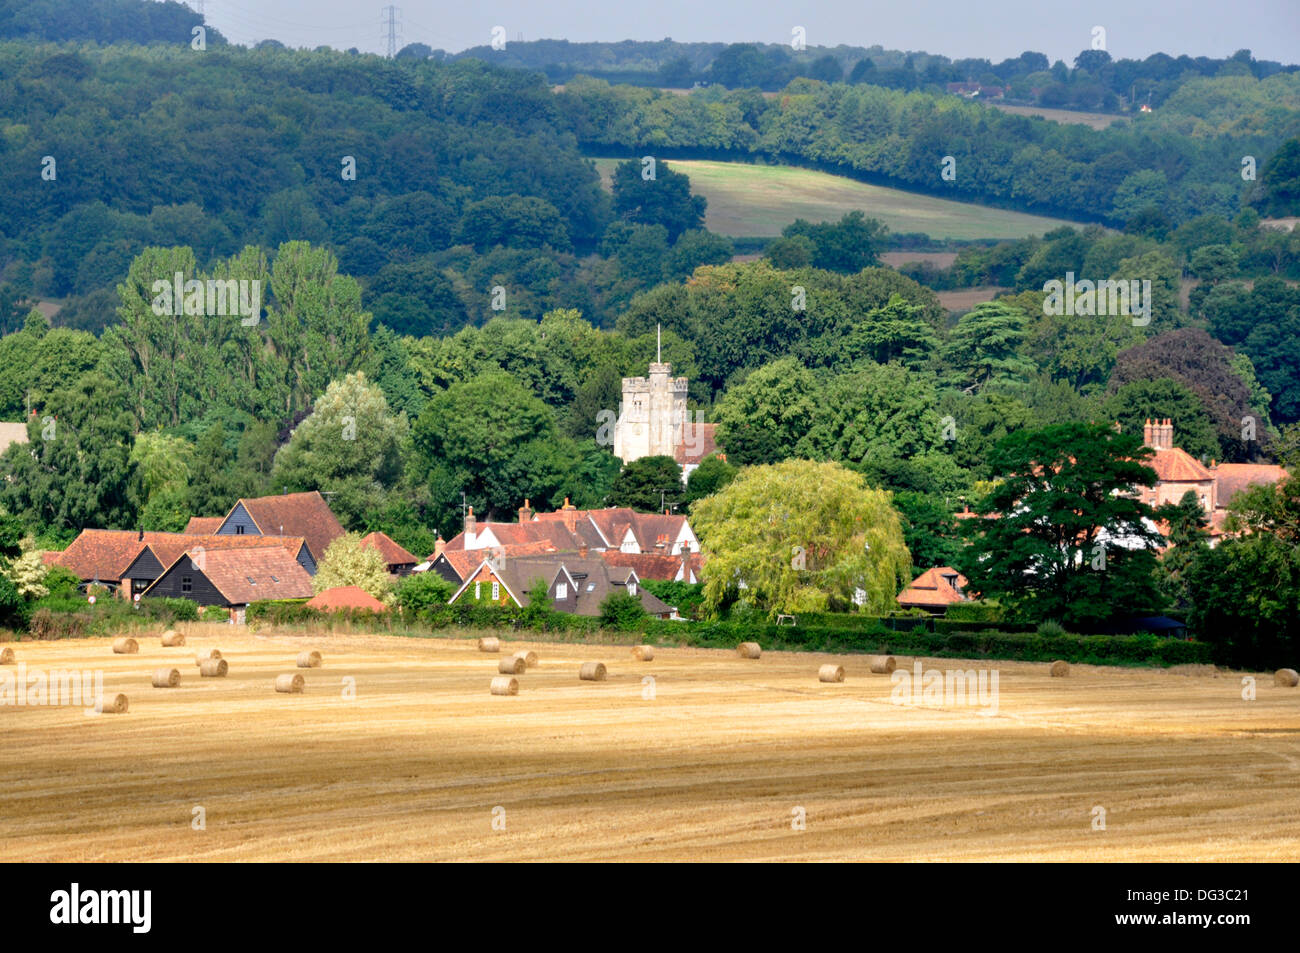 Bucks - Chiltern Hills -view to Little Missenden village - over field of golden stubble - straw baled for collection - sunlight - Stock Image